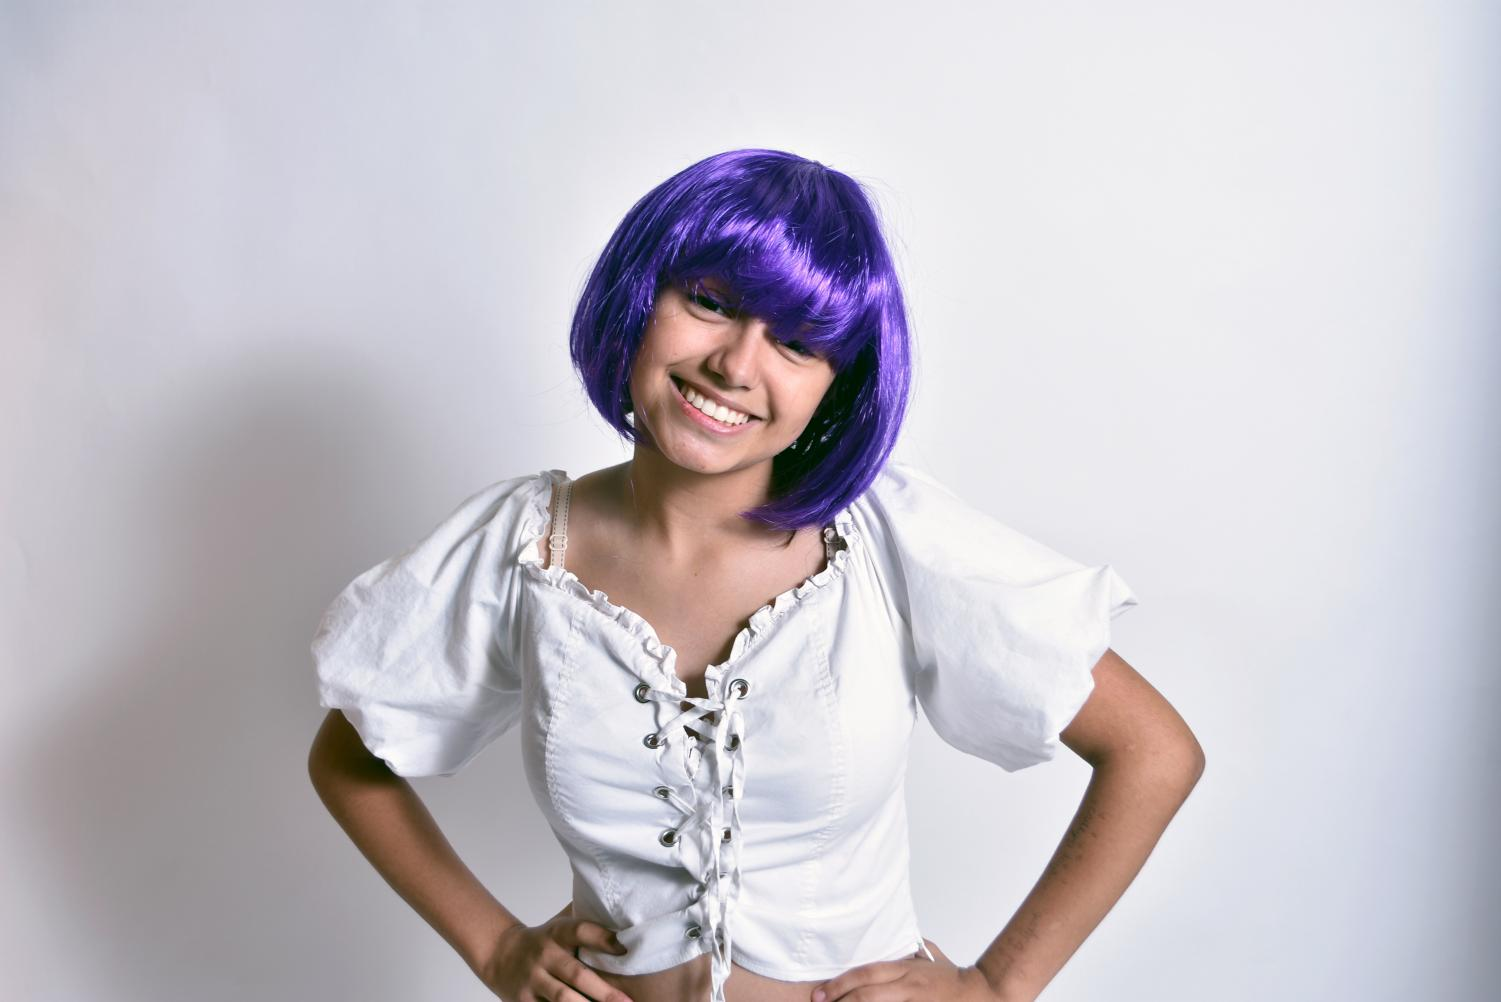 Melanie Matzen, a junior, dresses up as the fictional pop-star Ashley O, from the Black Mirror episode